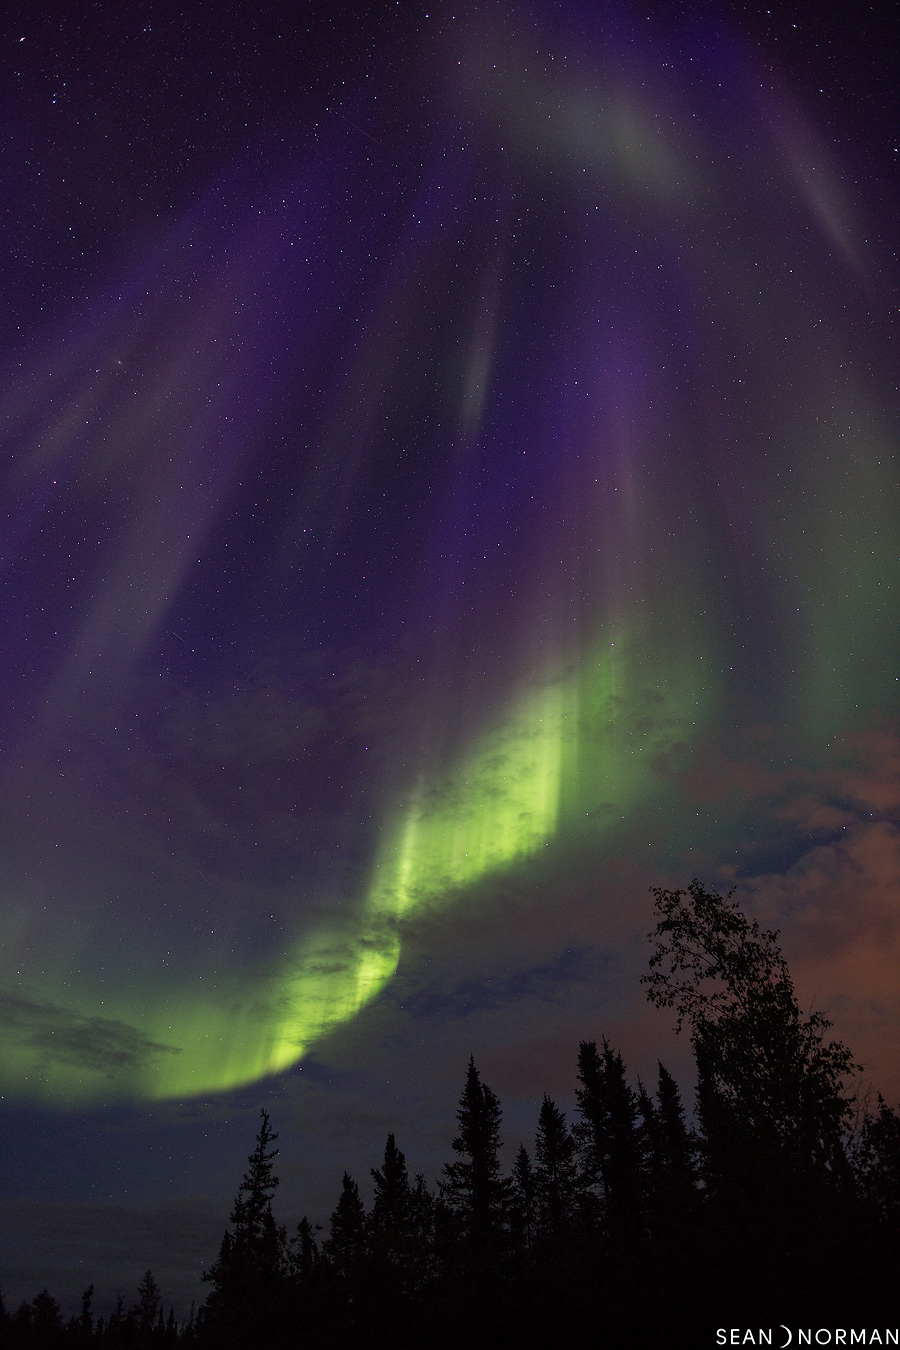 Sean's Yellowknife Guesthouse & Northern Lights Yellowknife - 7.jpg